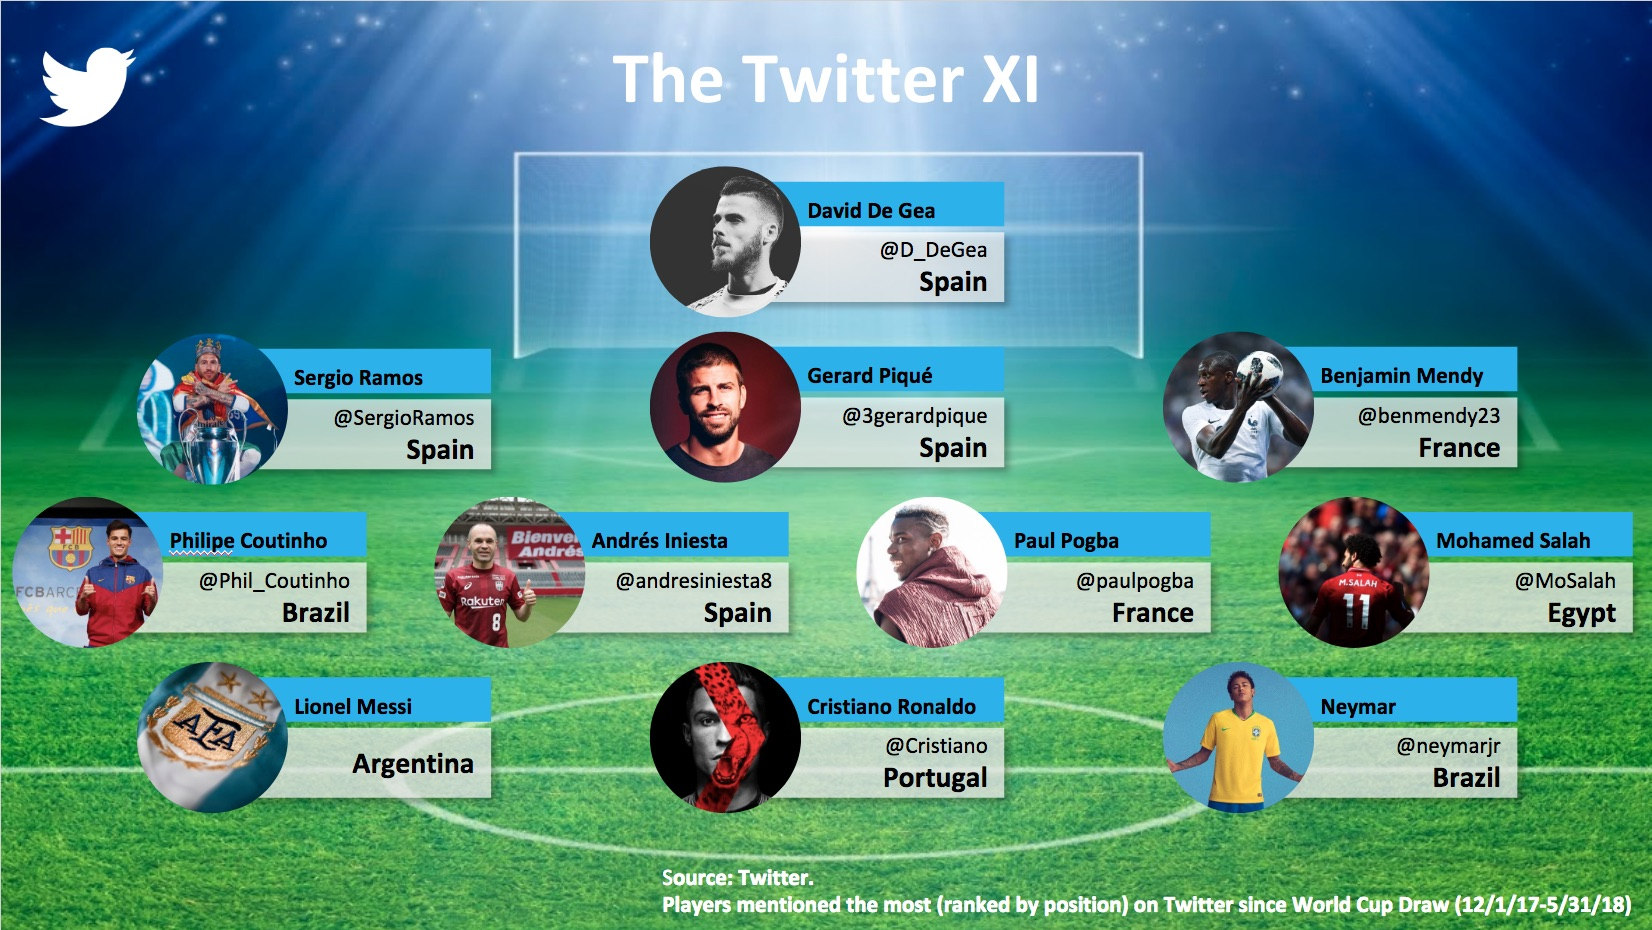 Once ideal Twitter Mundial Rusia 2018